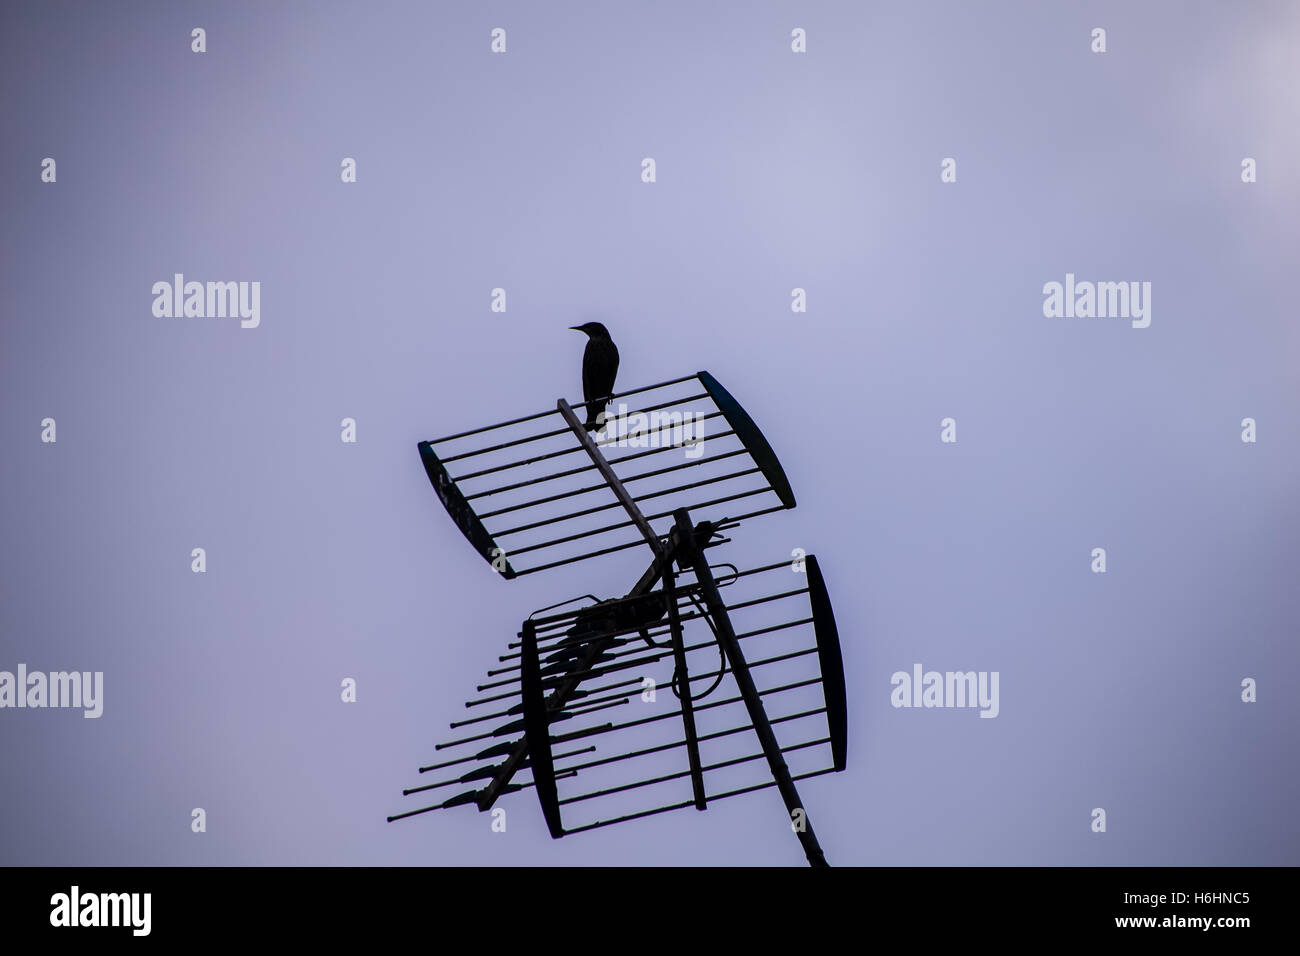 Silhouette of starling on tv aerial - Stock Image